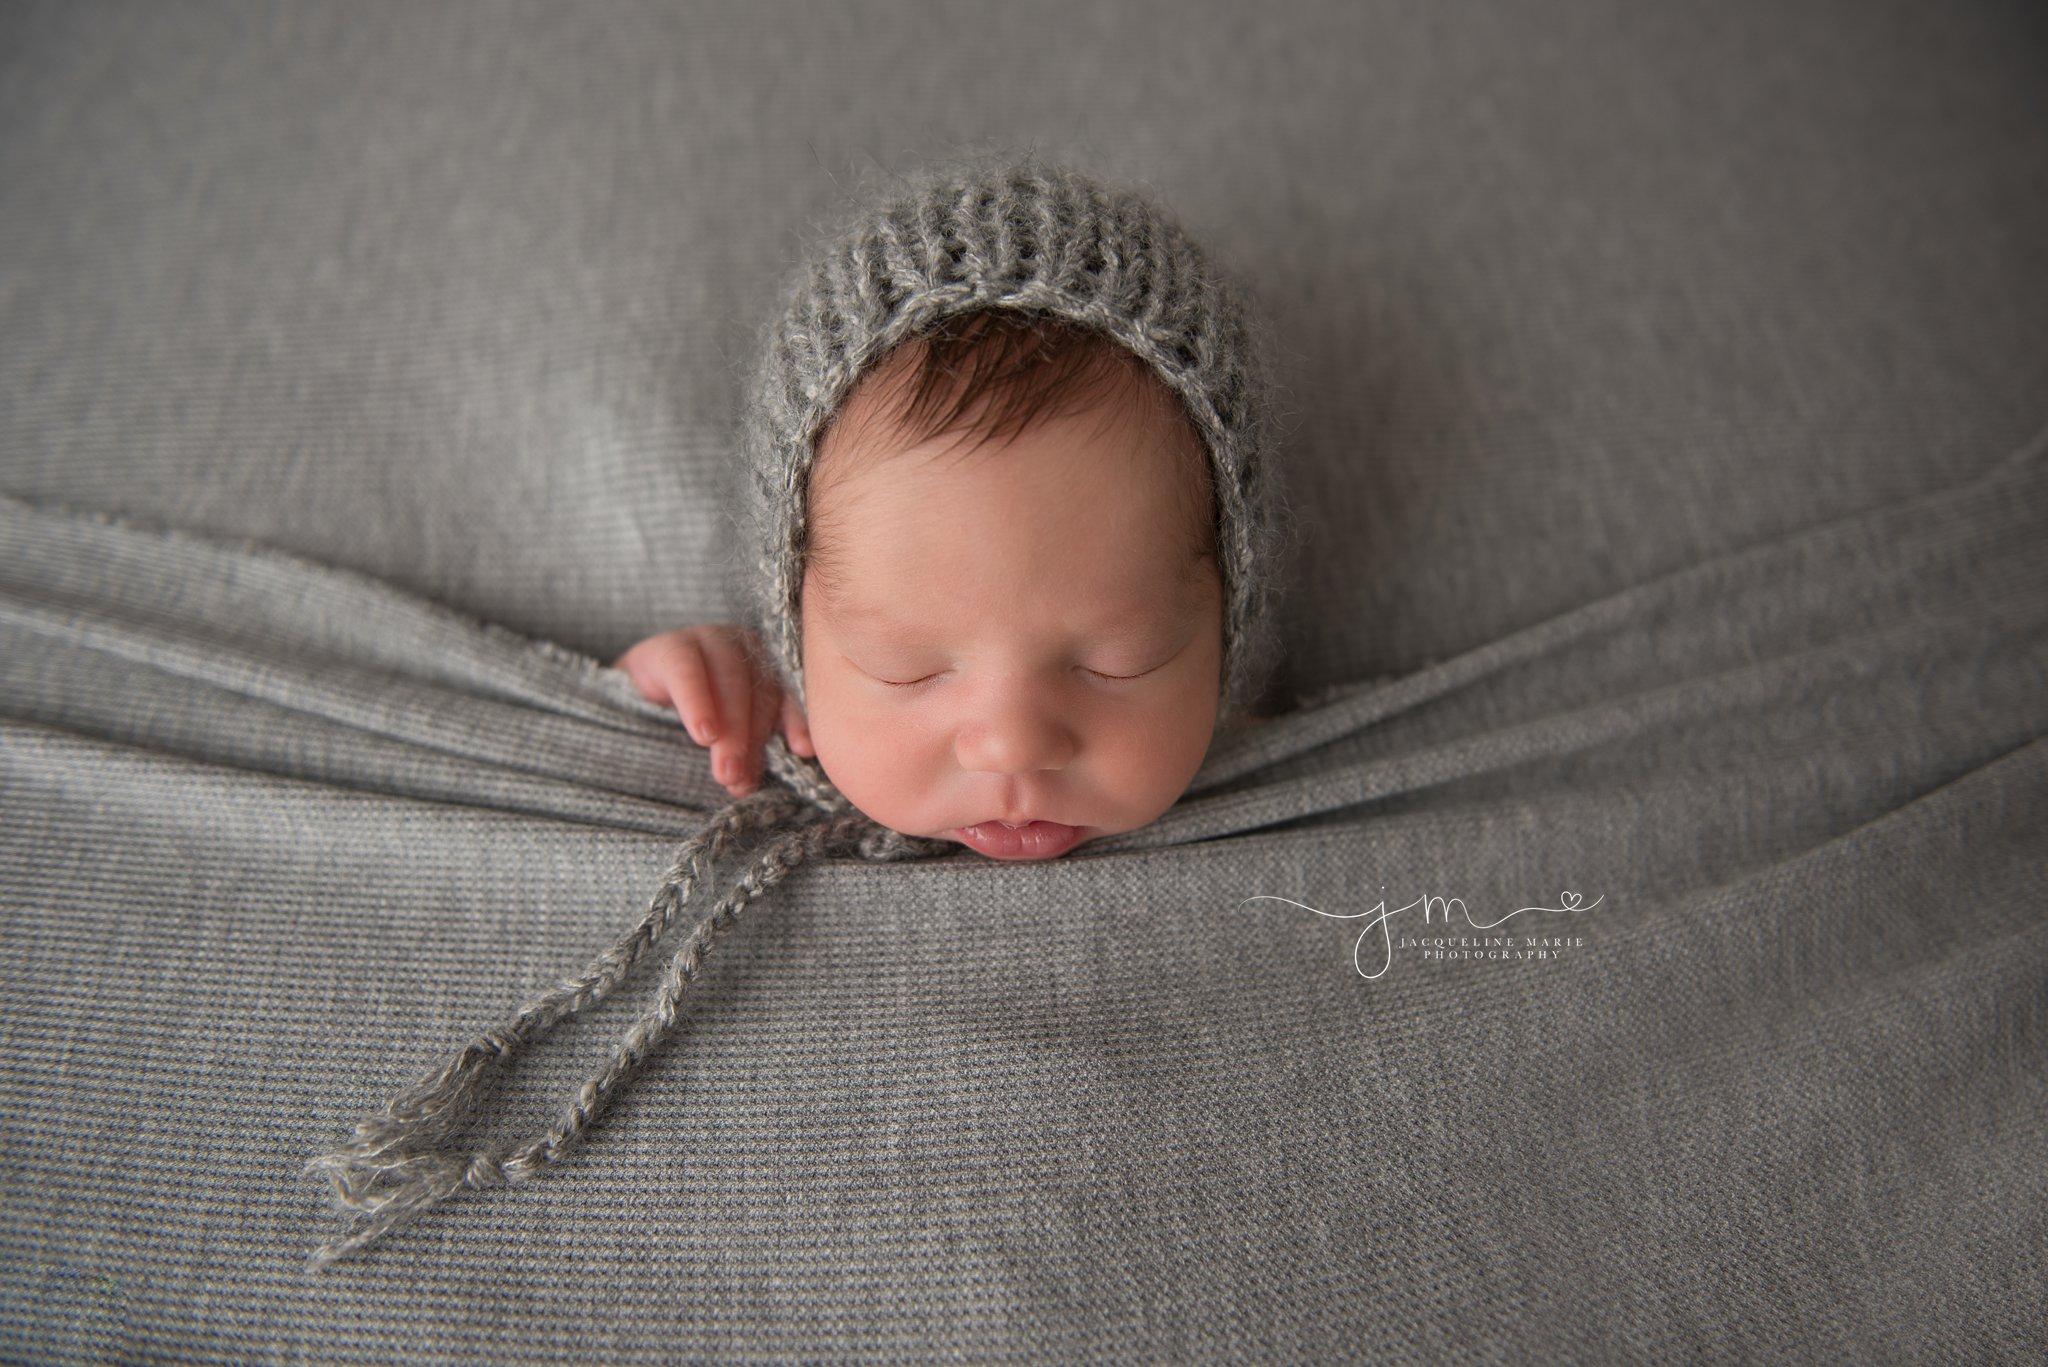 columbus ohio newborn baby boy wears gray bonnet with hands peeking out of gray blanket at jacqueline marie photography studio